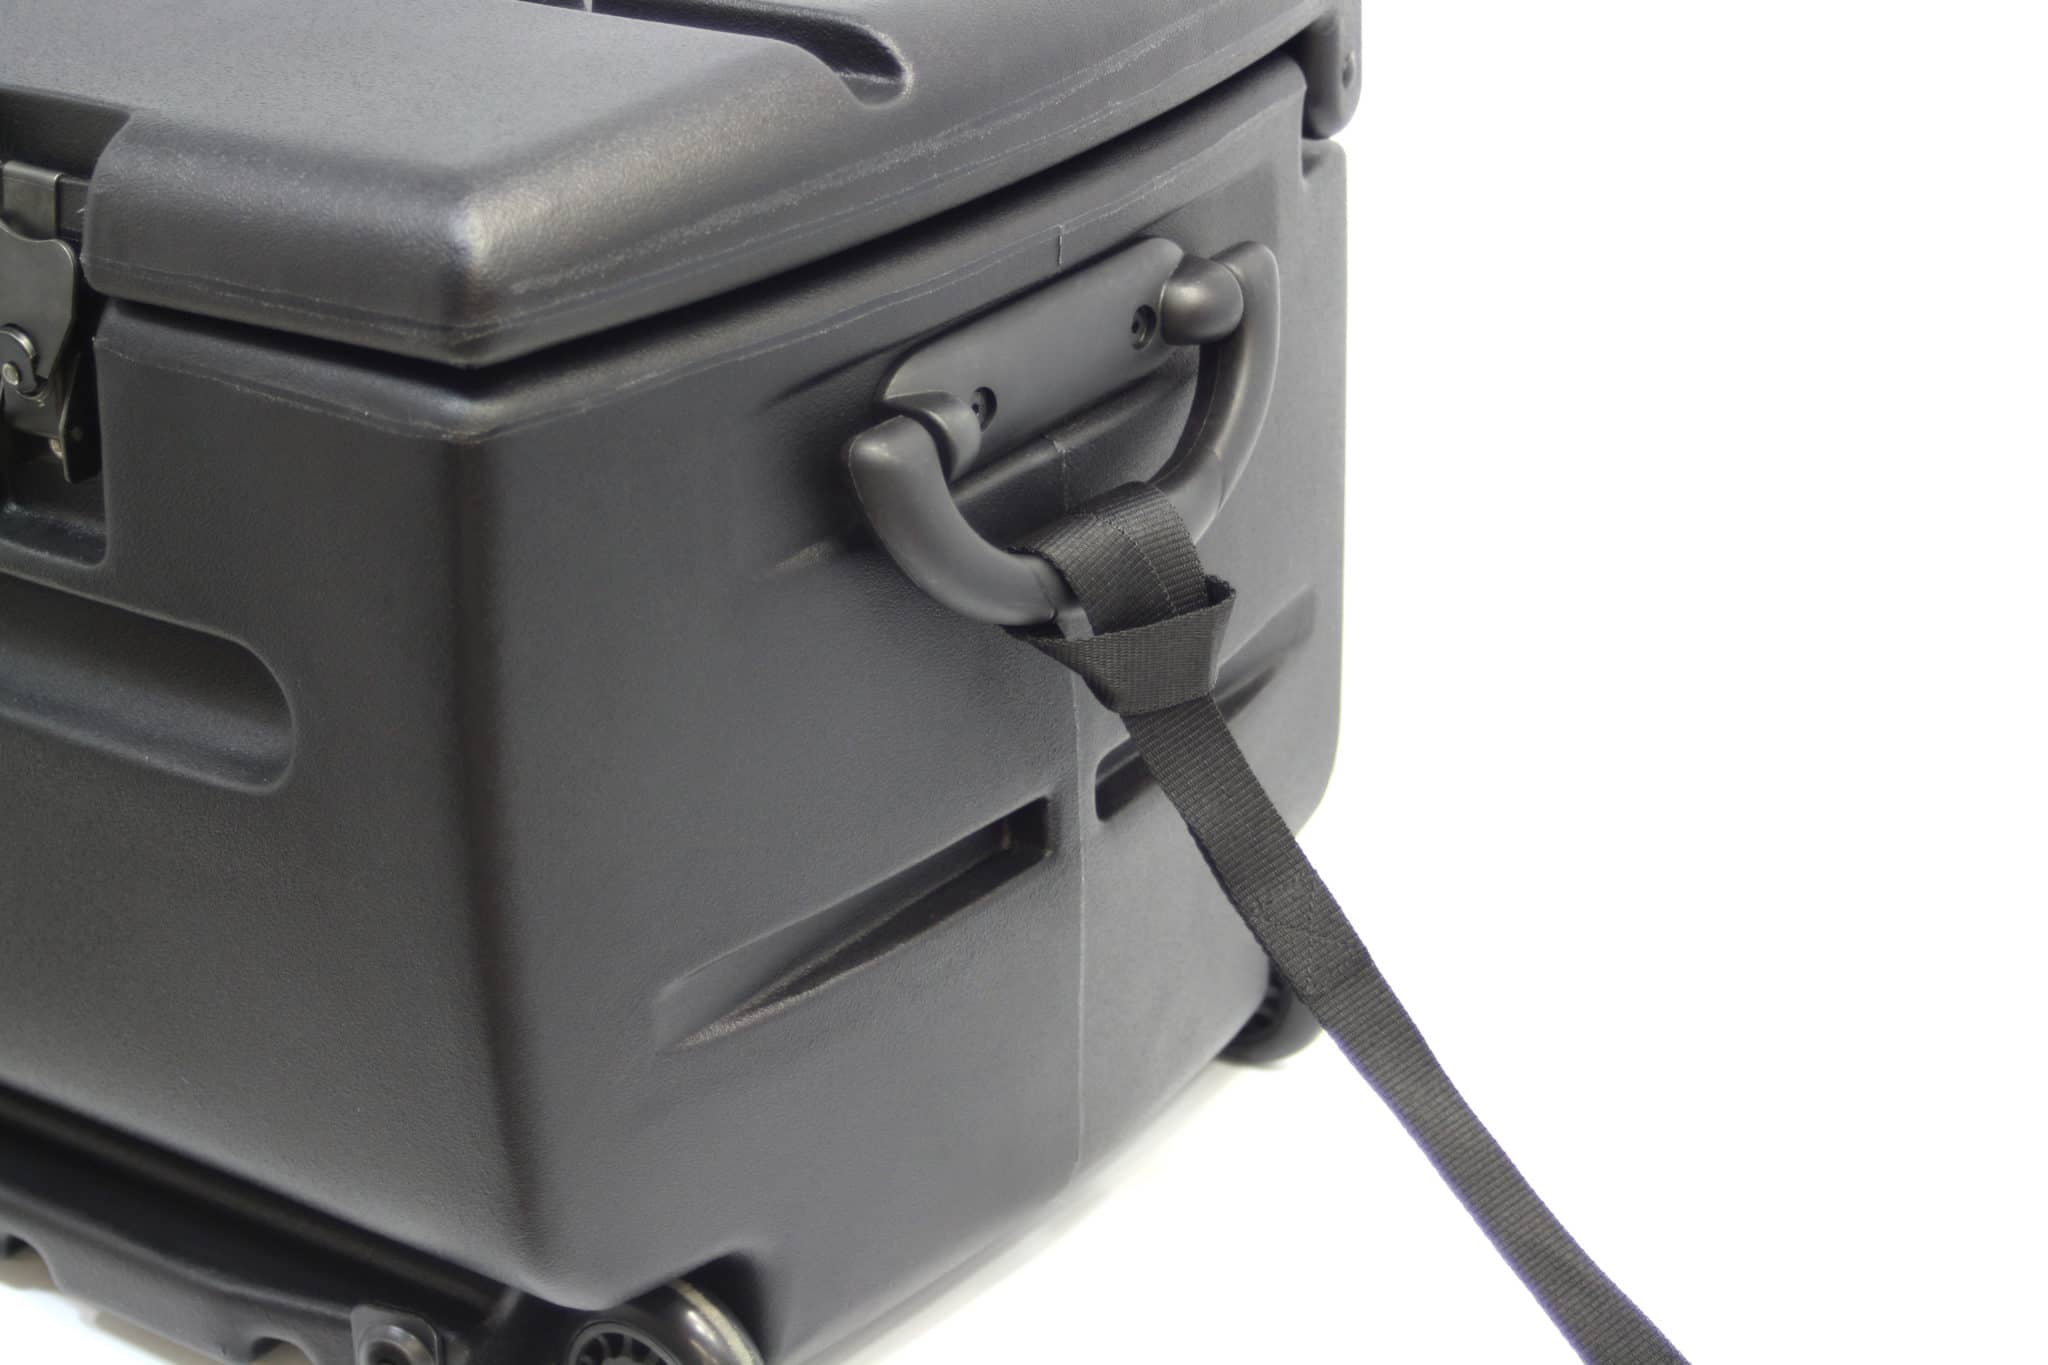 Includes Pull Handles on Both Sides & 1 Strap